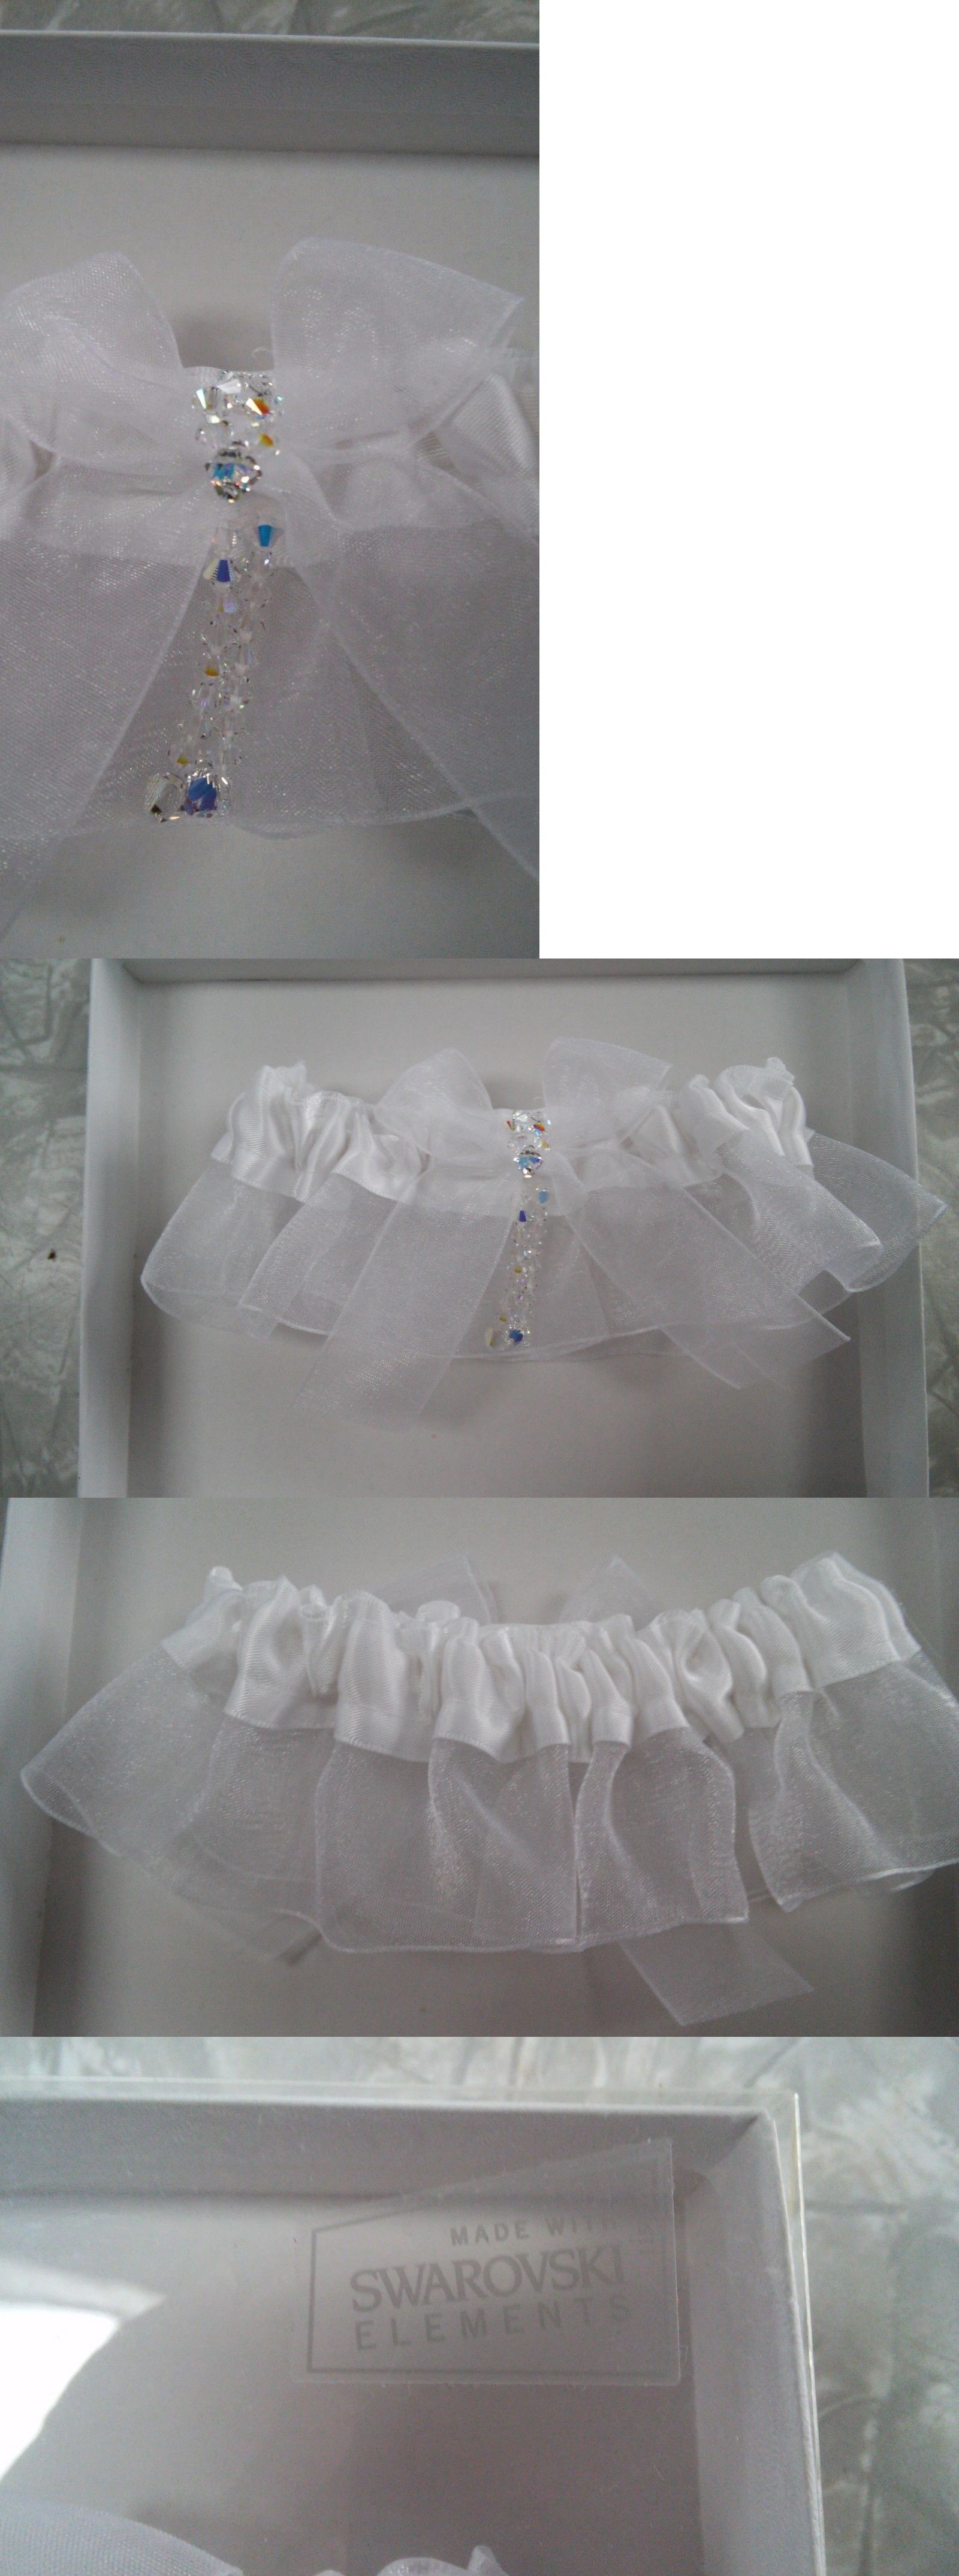 6511ecdbb19 Garters 15718  Herta Littrell Bridal Garter Made With Swarovski Elements  Wedding Crystal Bling -  BUY IT NOW ONLY   38.98 on eBay!